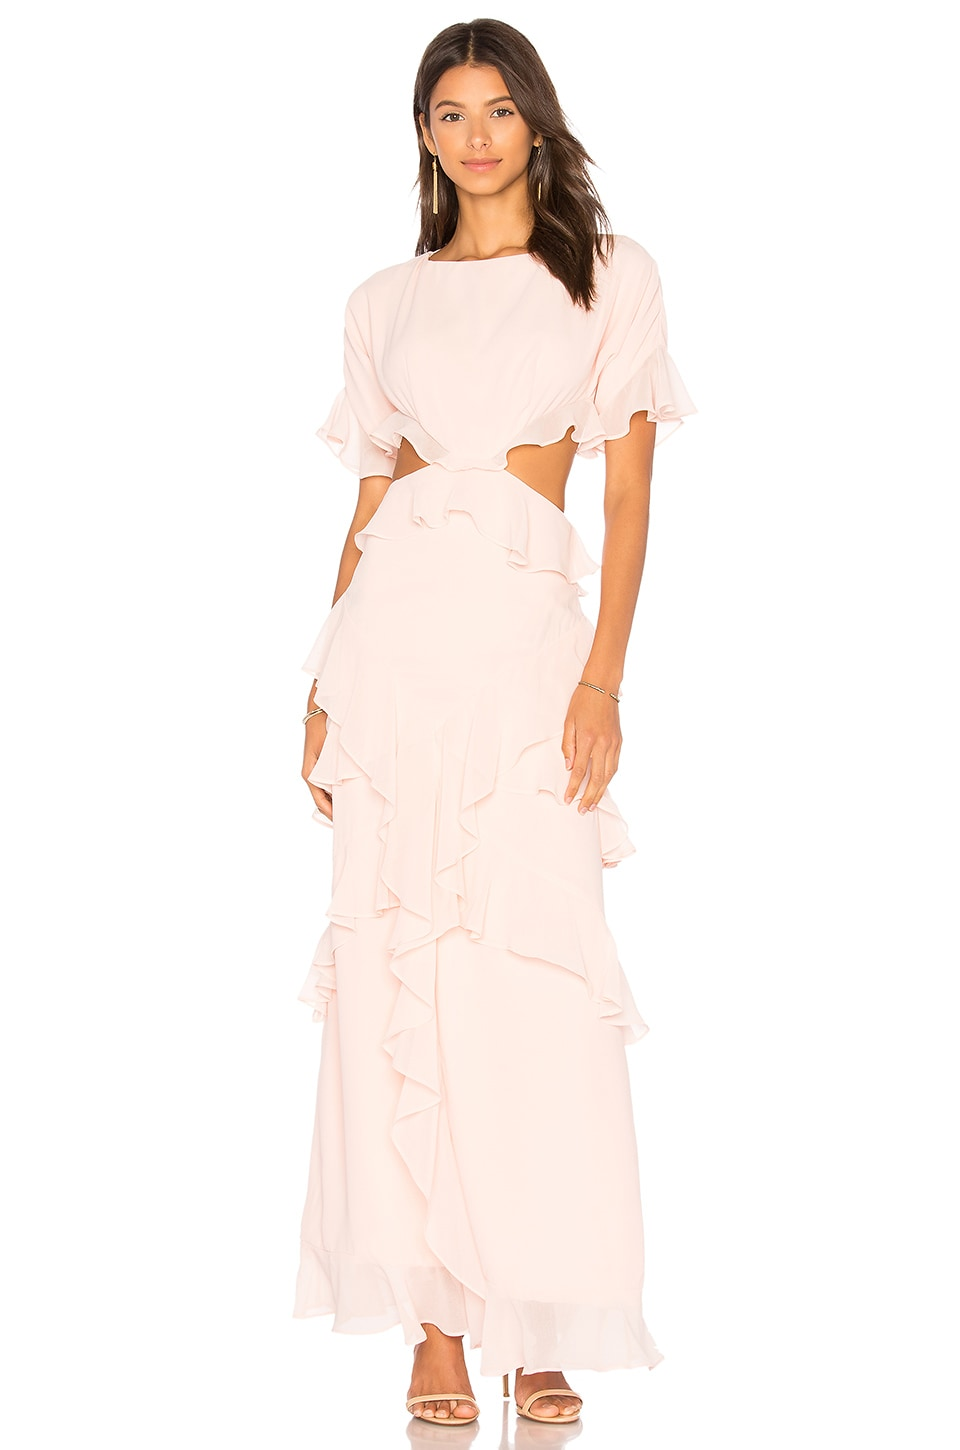 Photo of x REVOLVE Marisa Ruffle Dress by Fame And Partners on sale